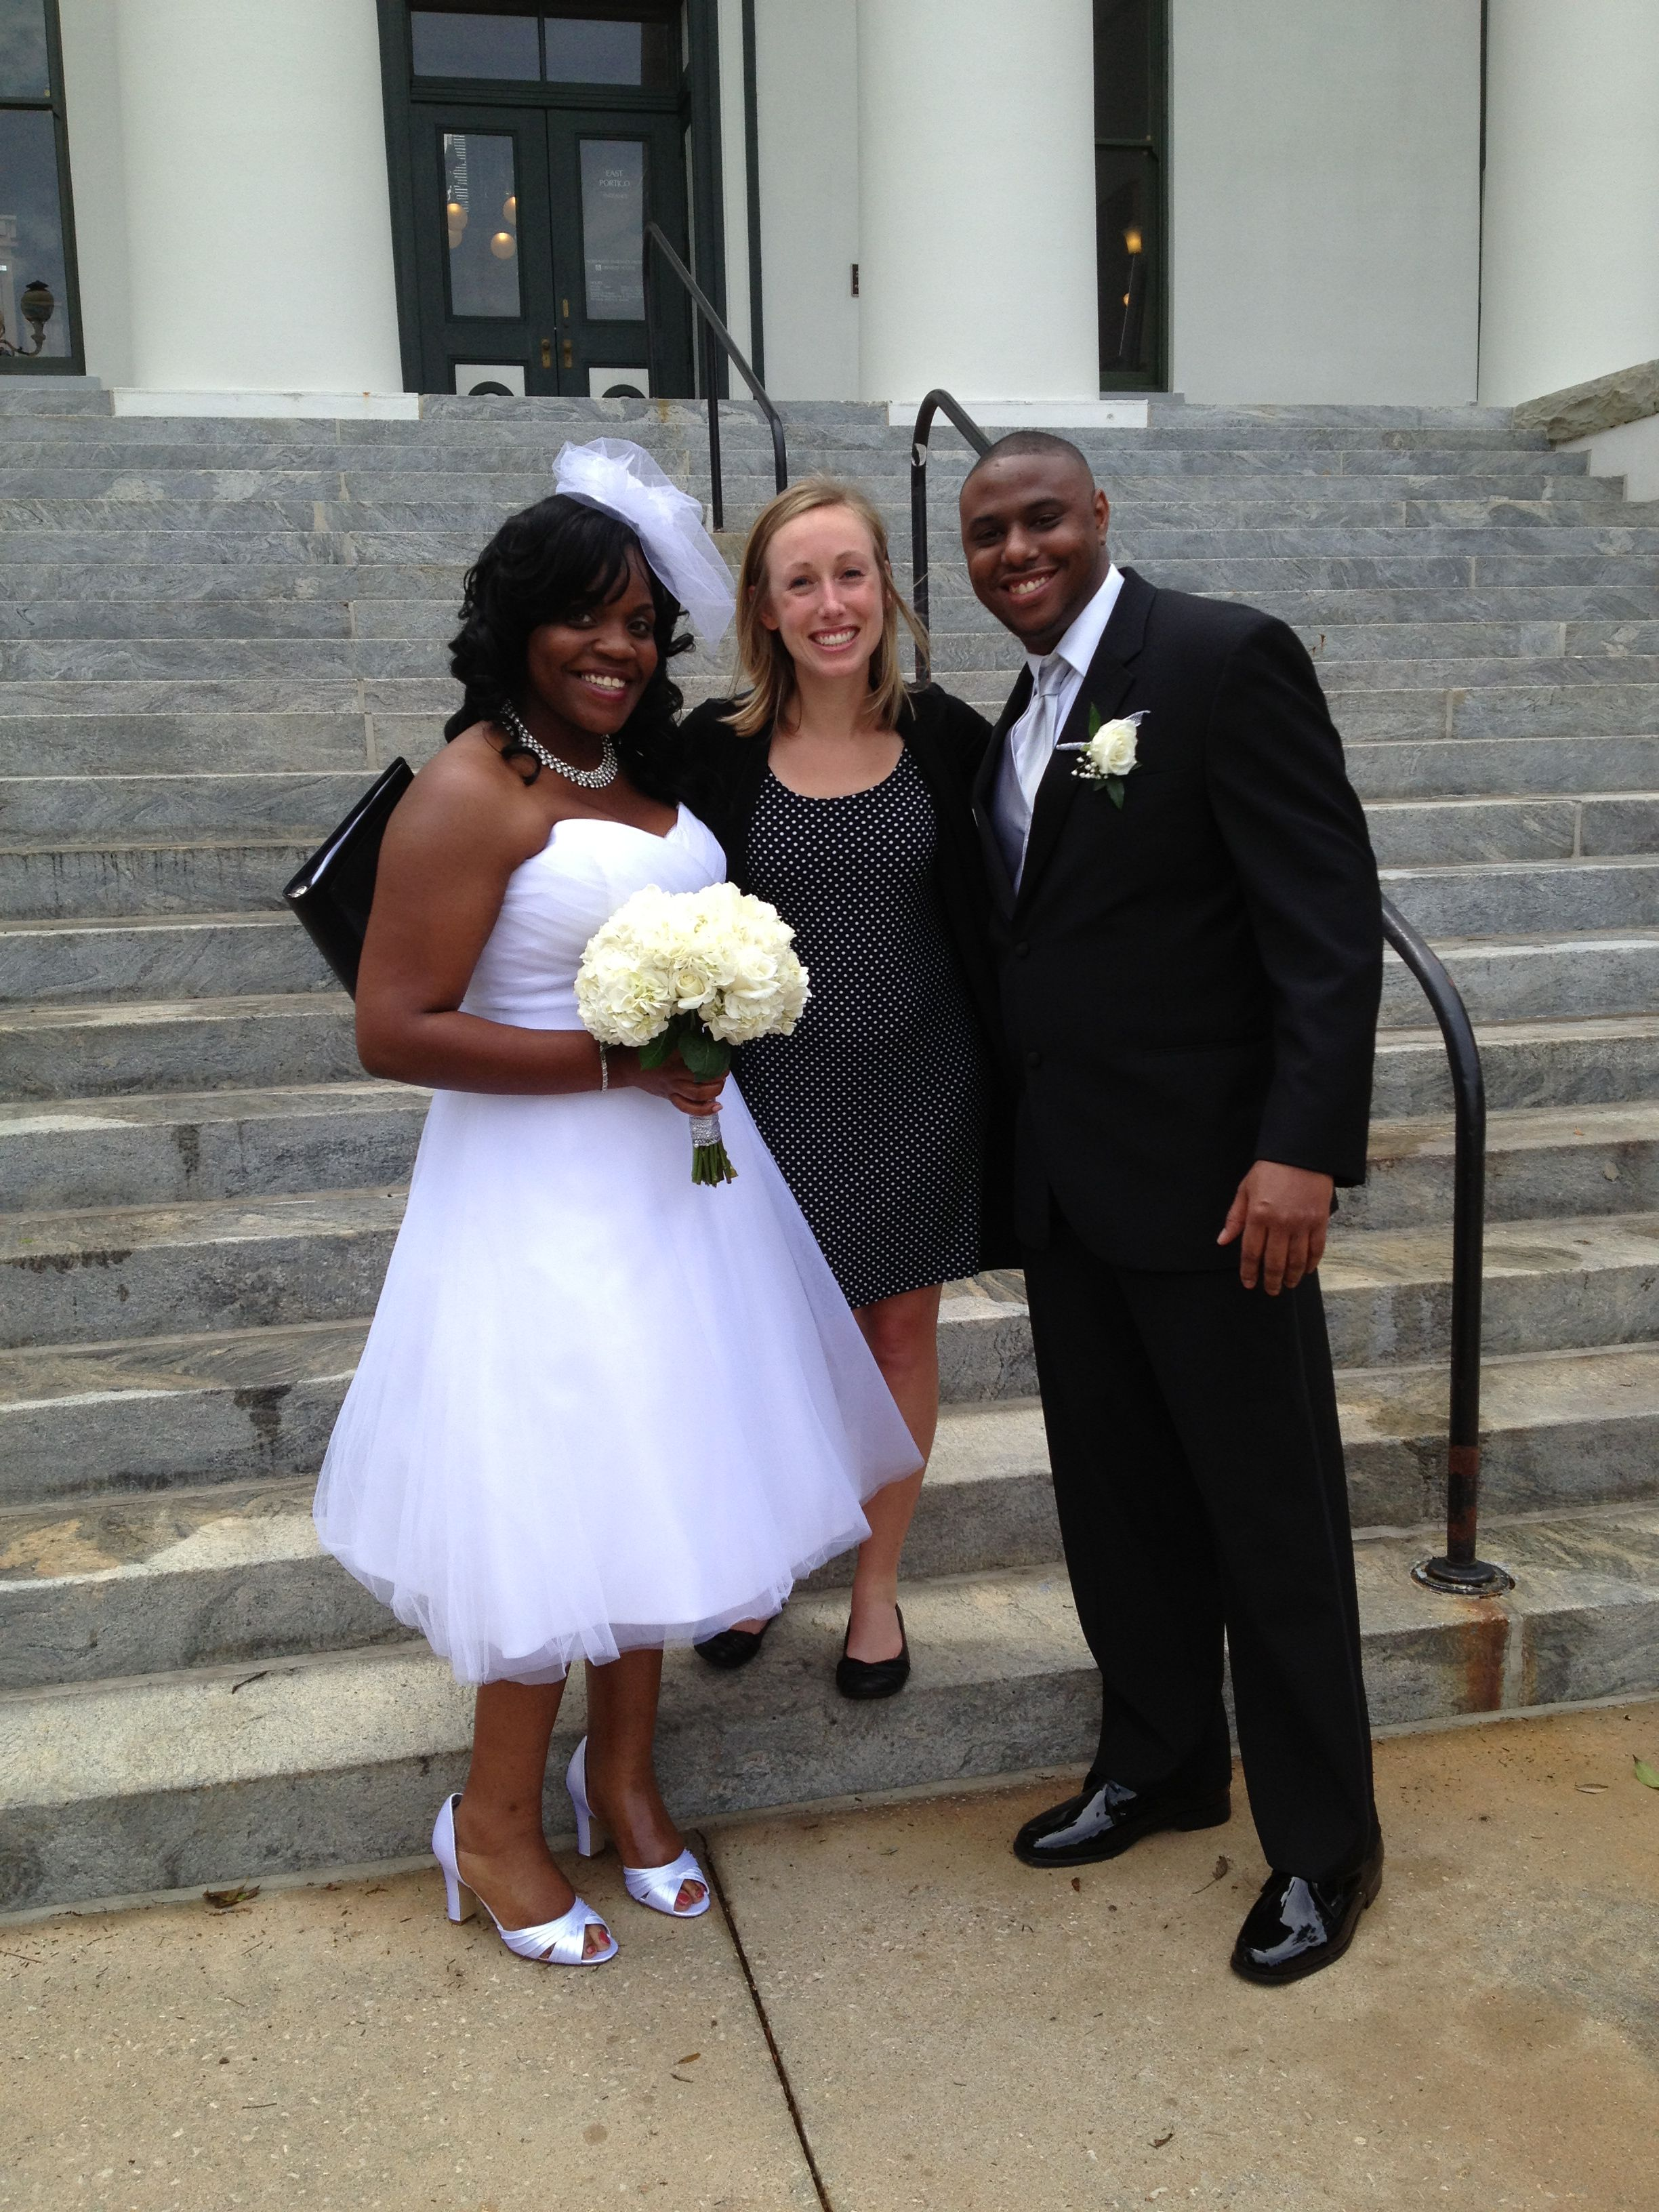 Florida State Capital Wedding, Wedding on the steps of the